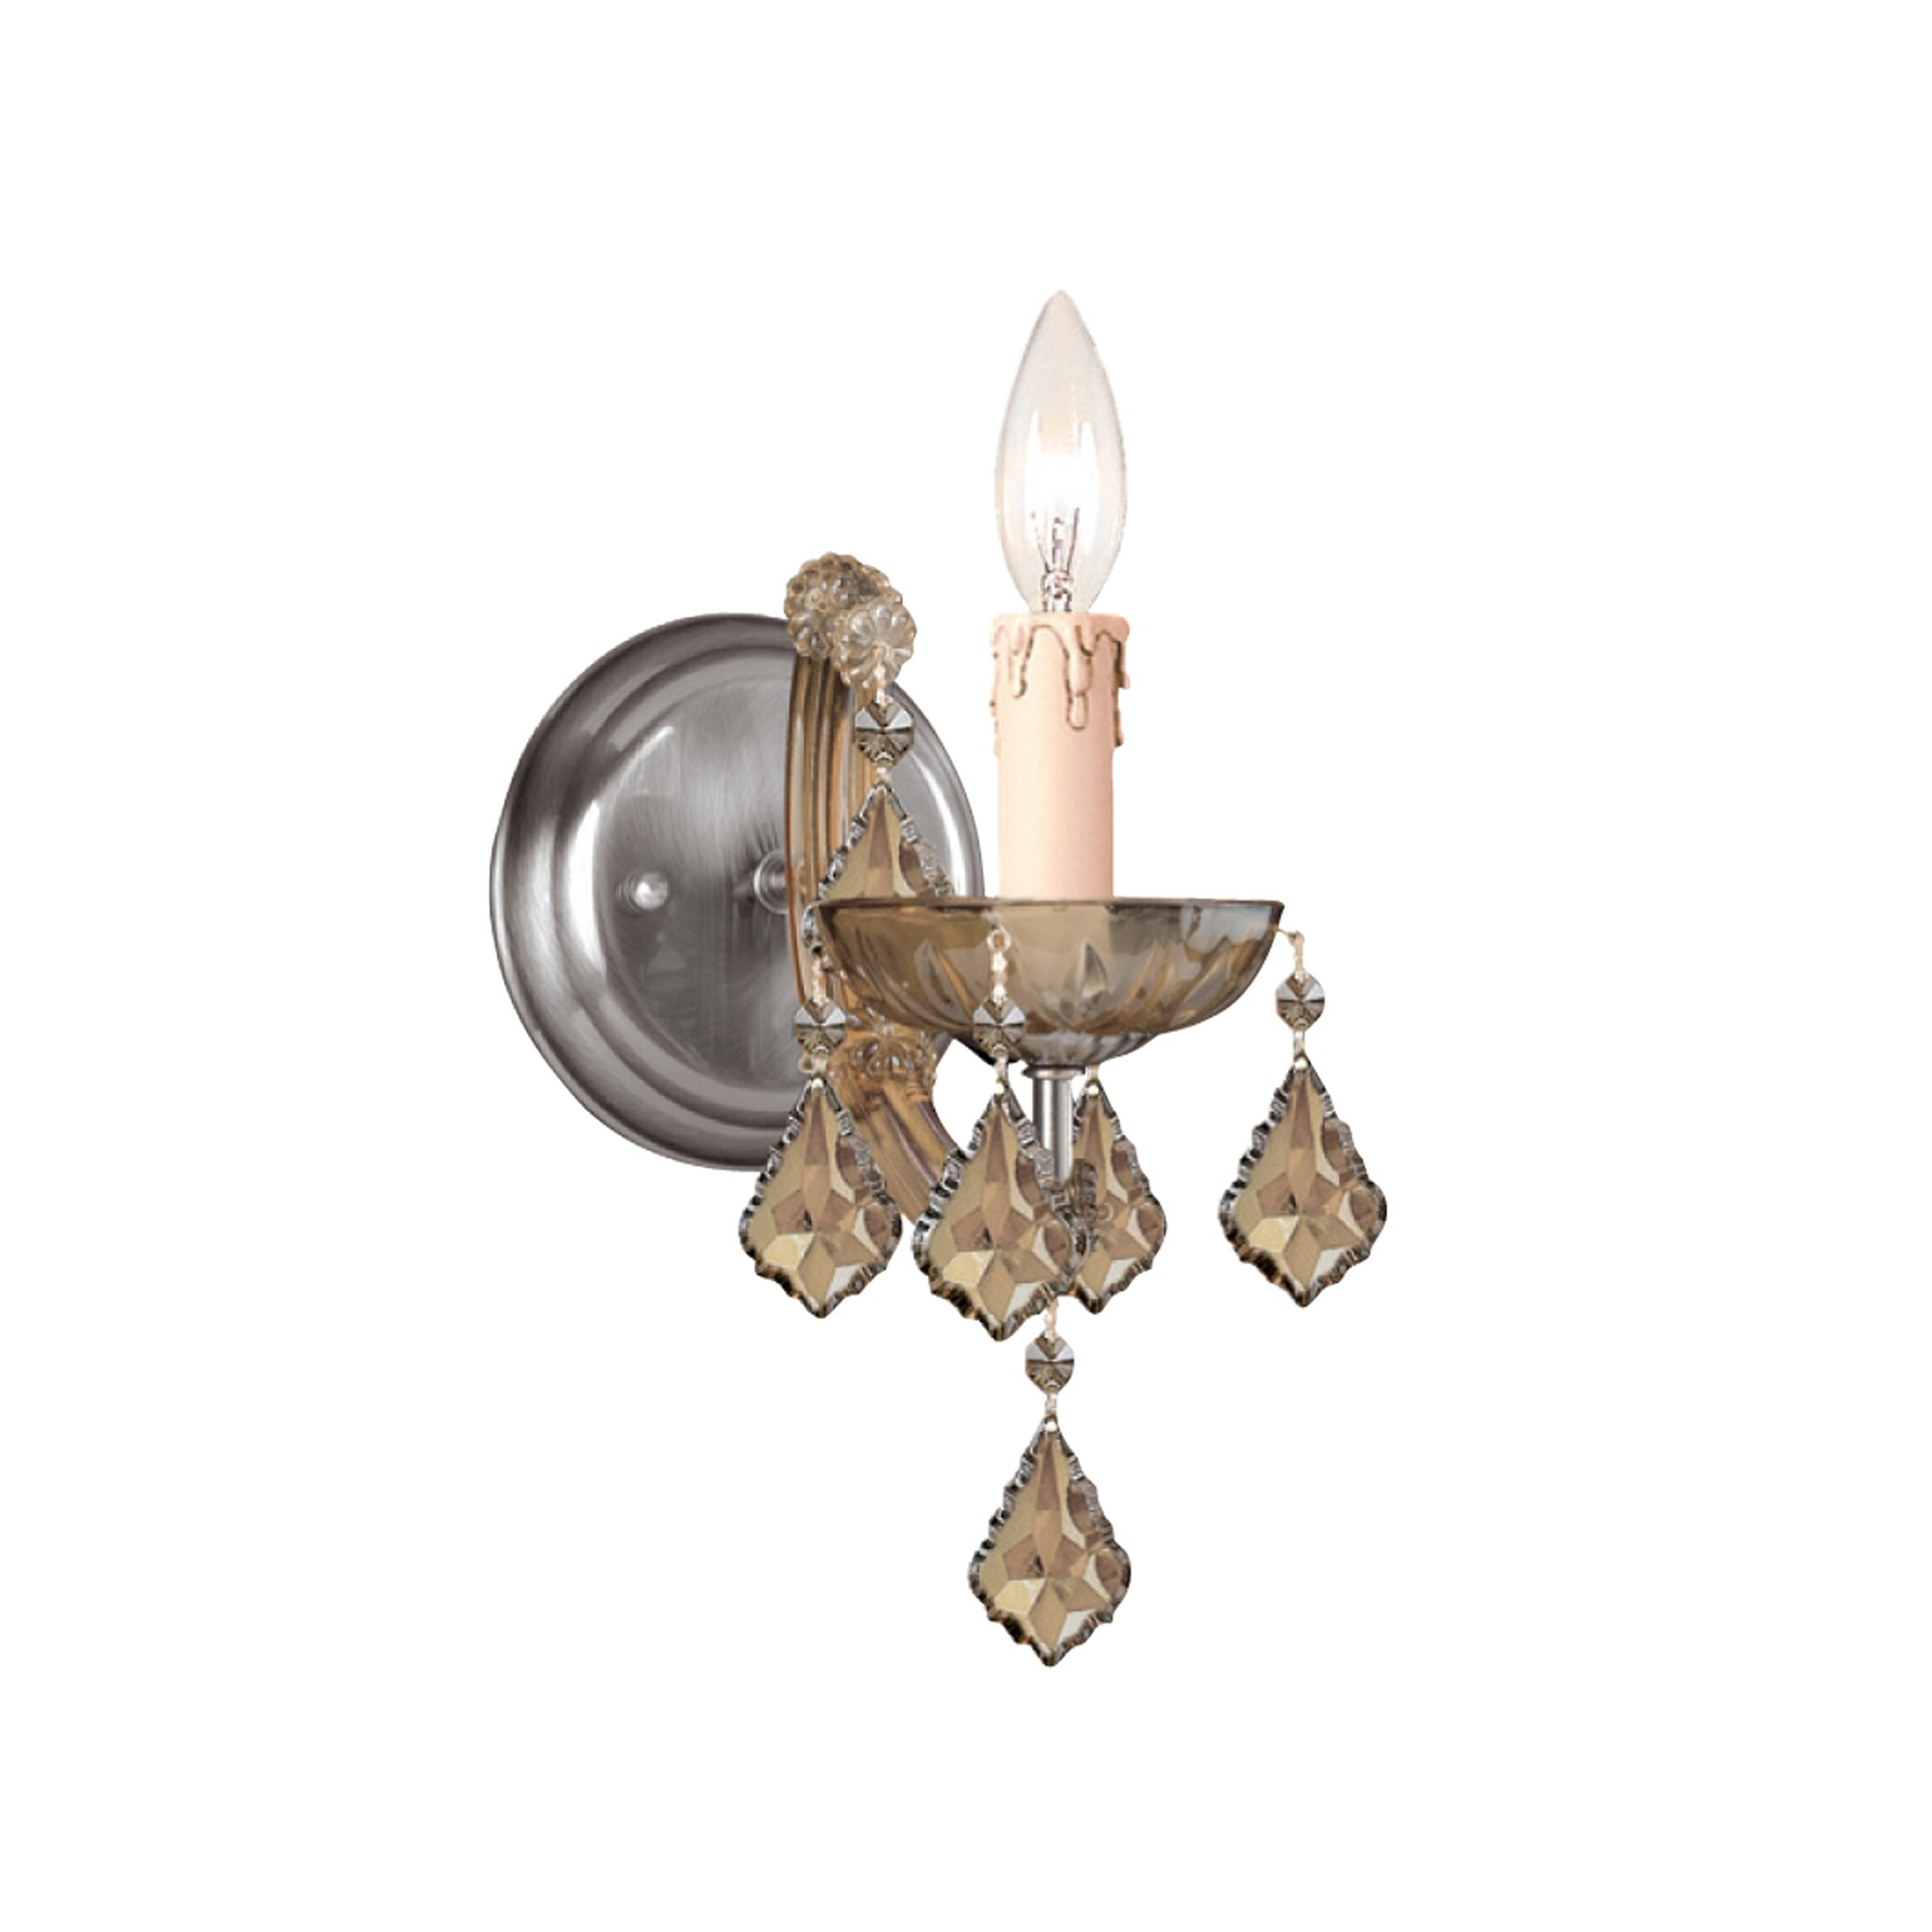 Crystal Wall Sconce Candle Holder : Bohemian Crystal Candle Wall Sconce Wayfair